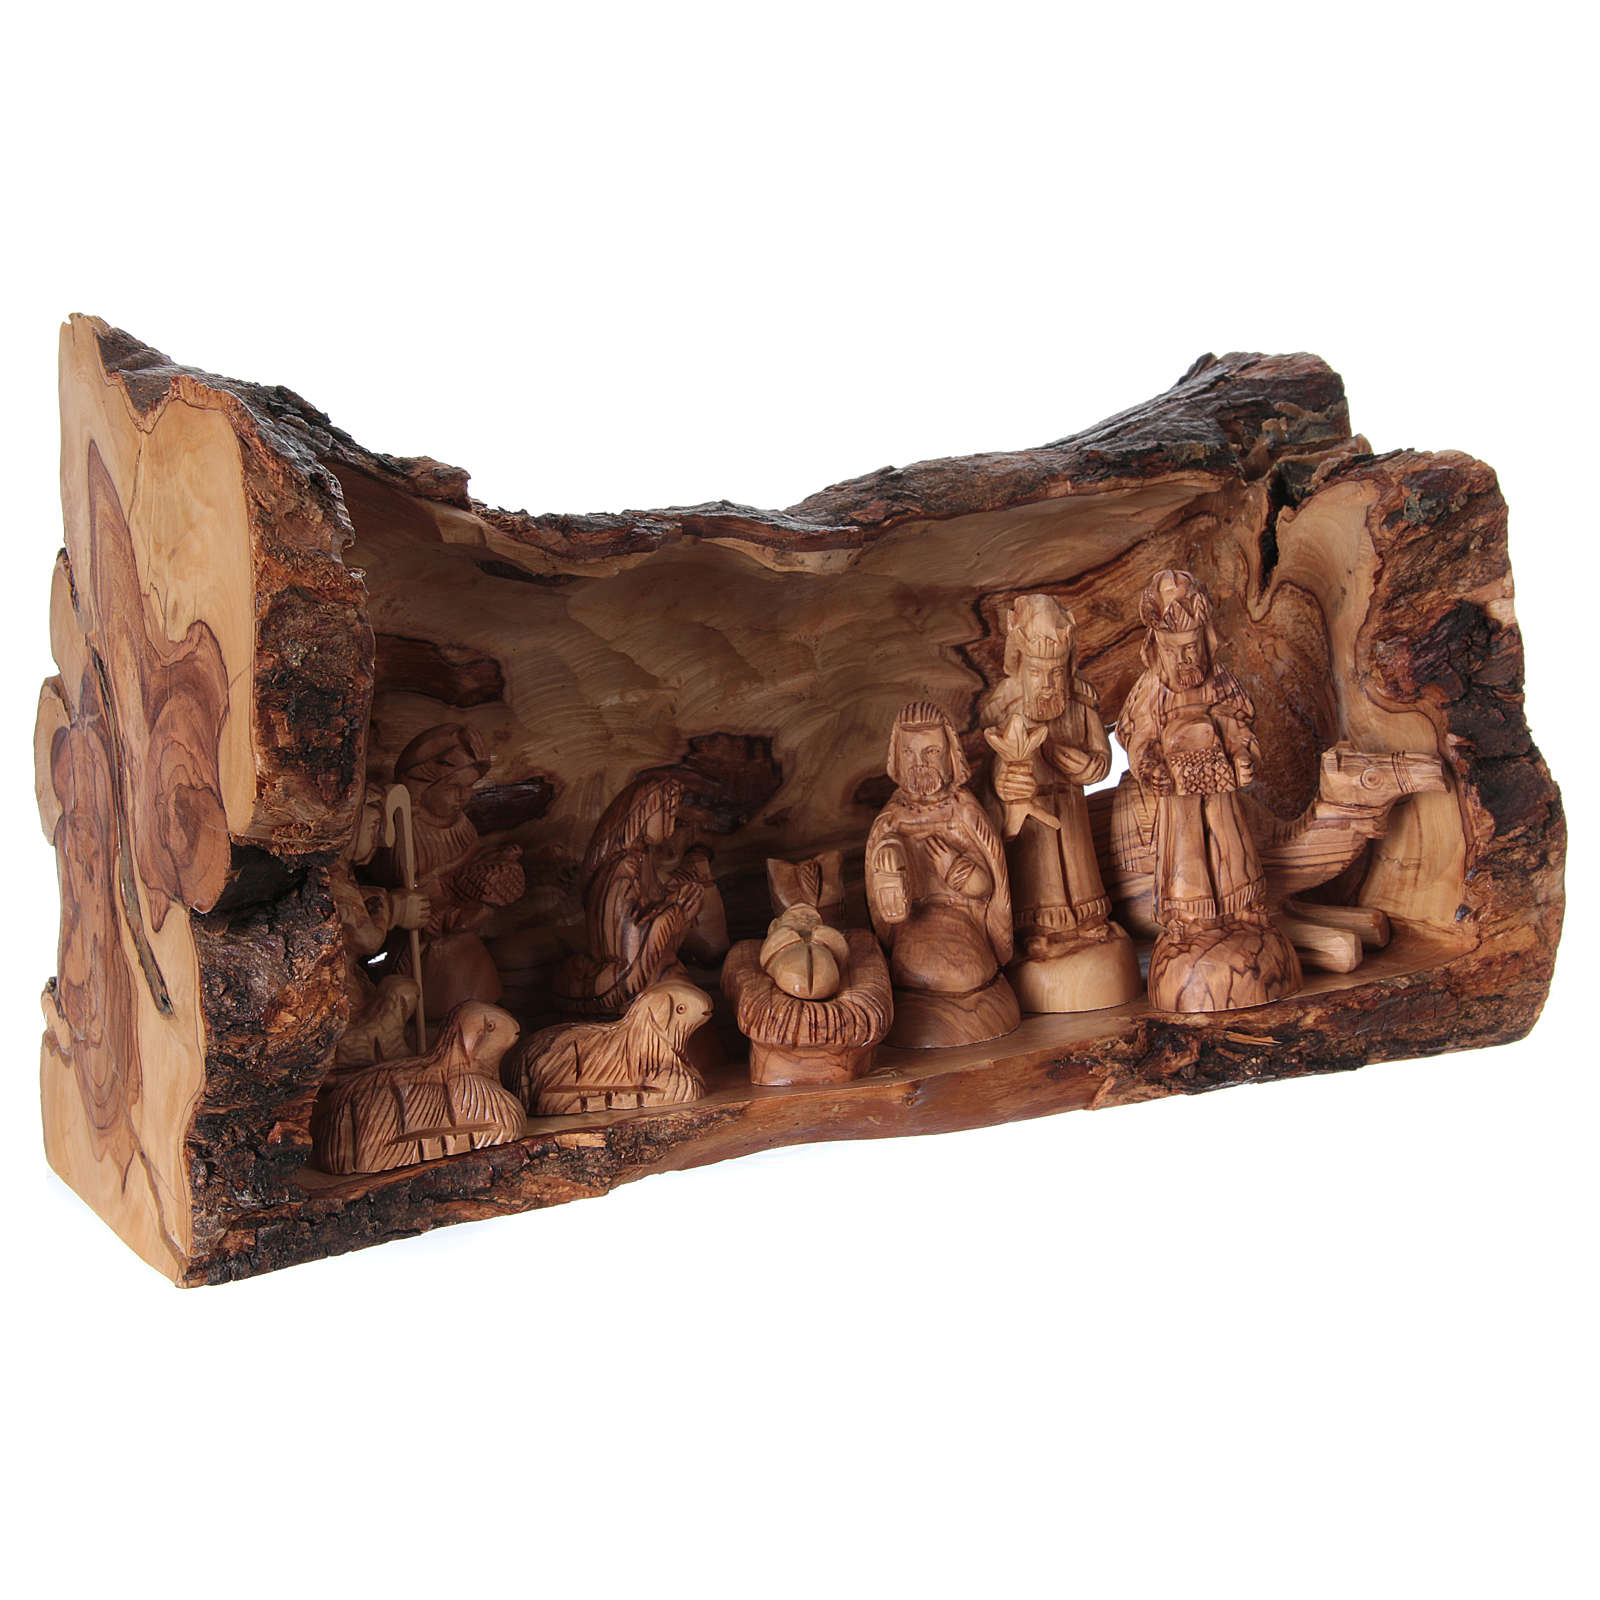 Nativity scene with natural cave in Bethlehem olive wood 25x40x20 cm 4